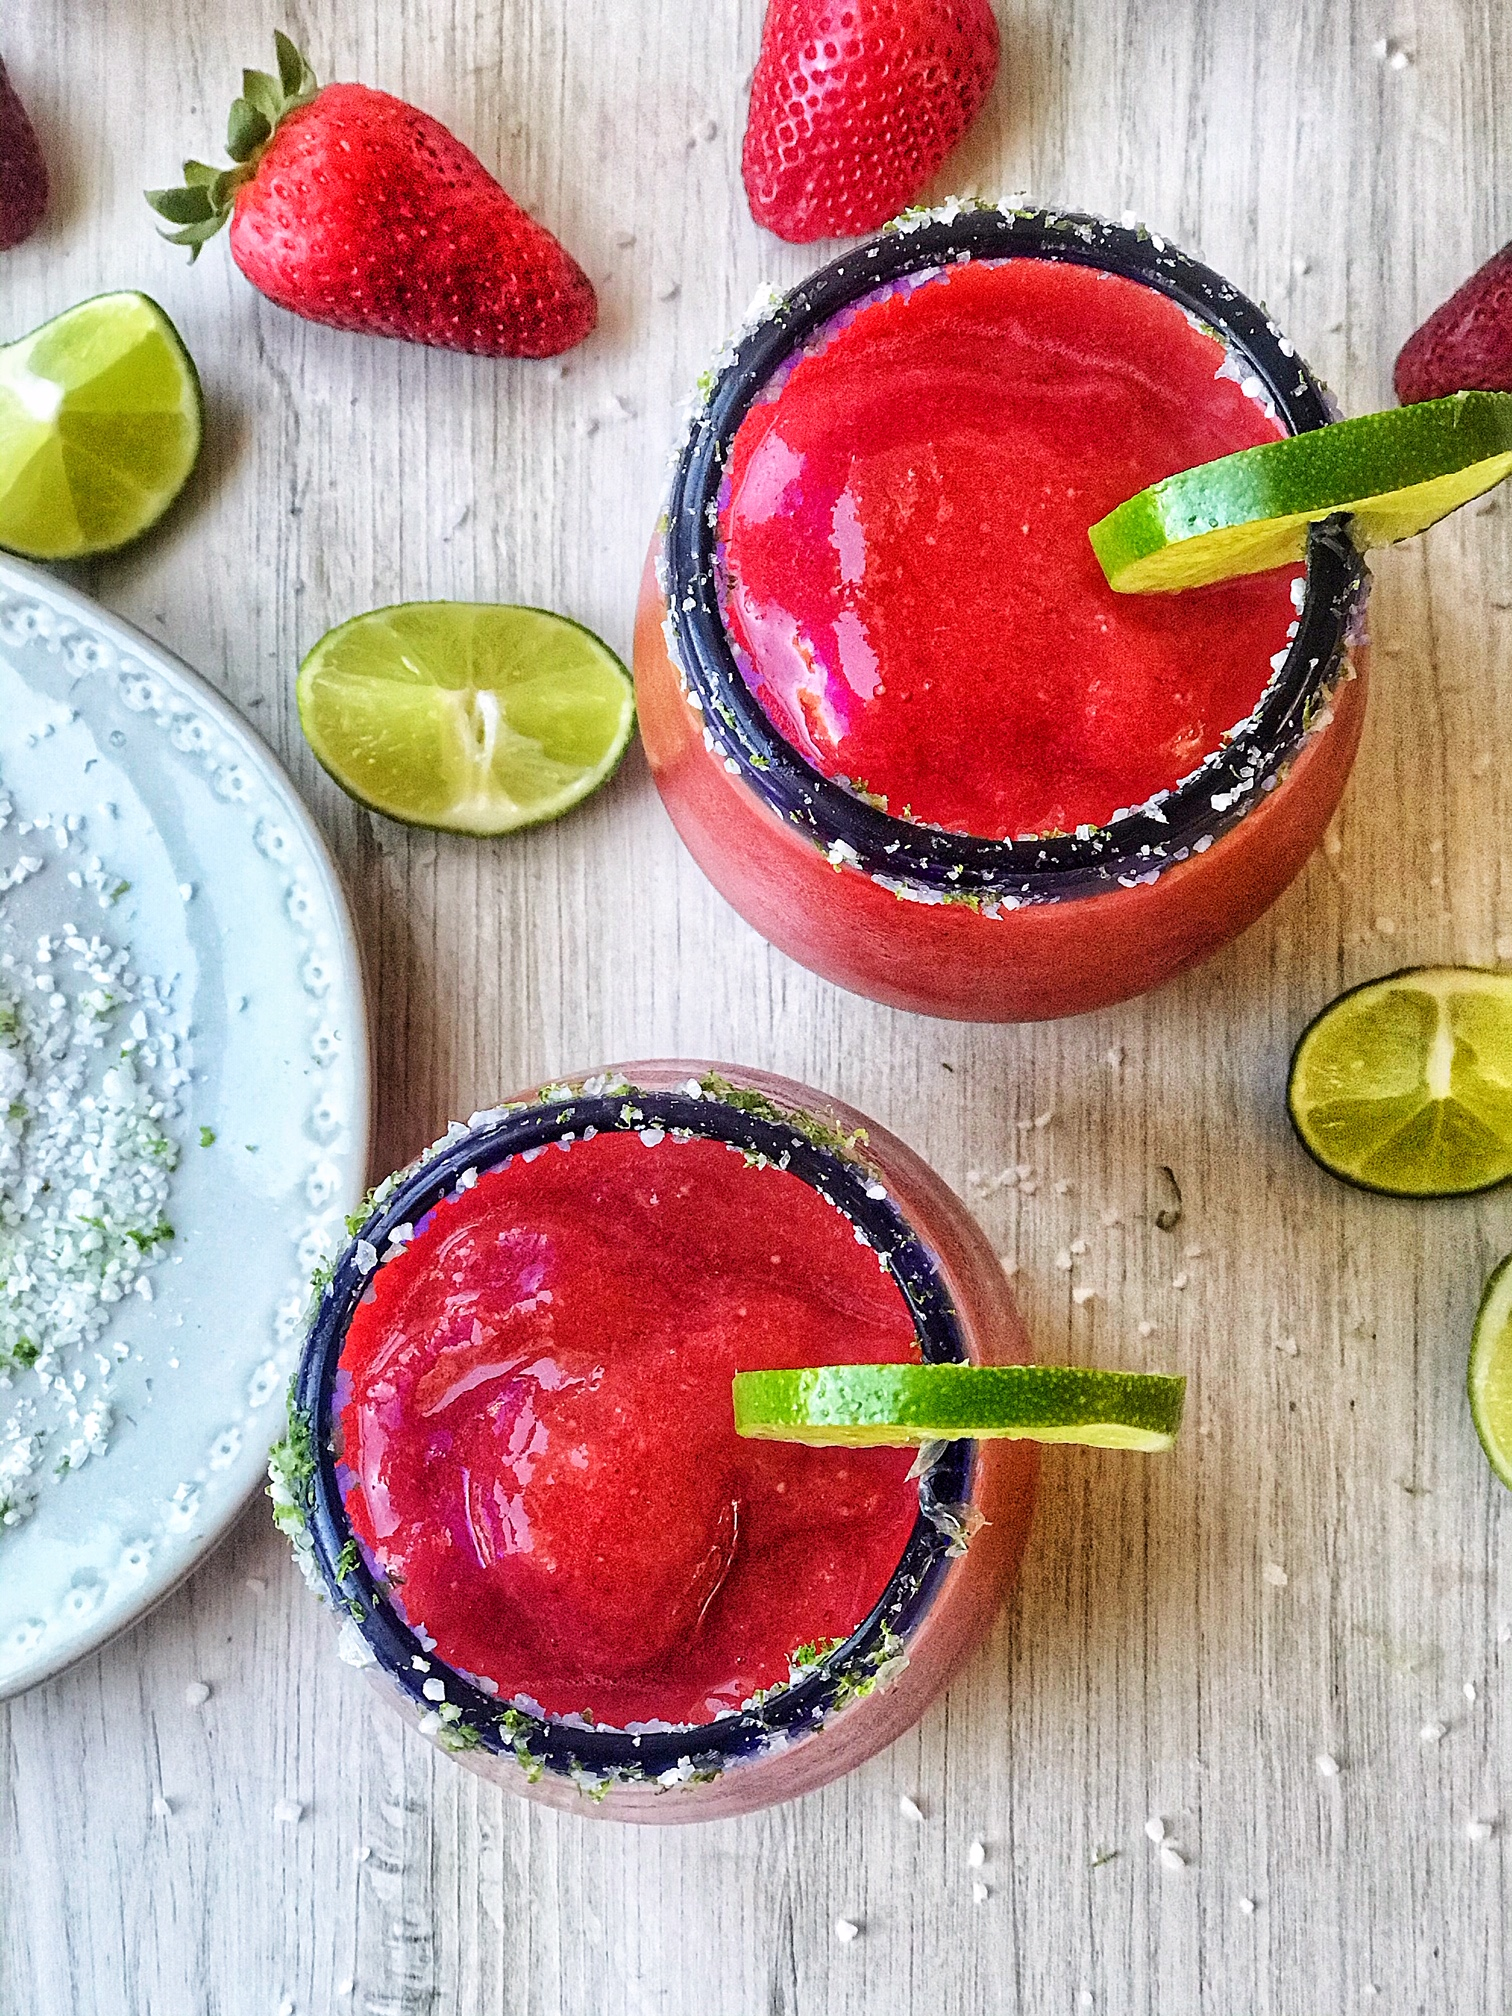 Two strawberry frozen margaritas with salt rim and limes. Limes and strawberries surround the margaritas. Small plate of salt and lemon zest.